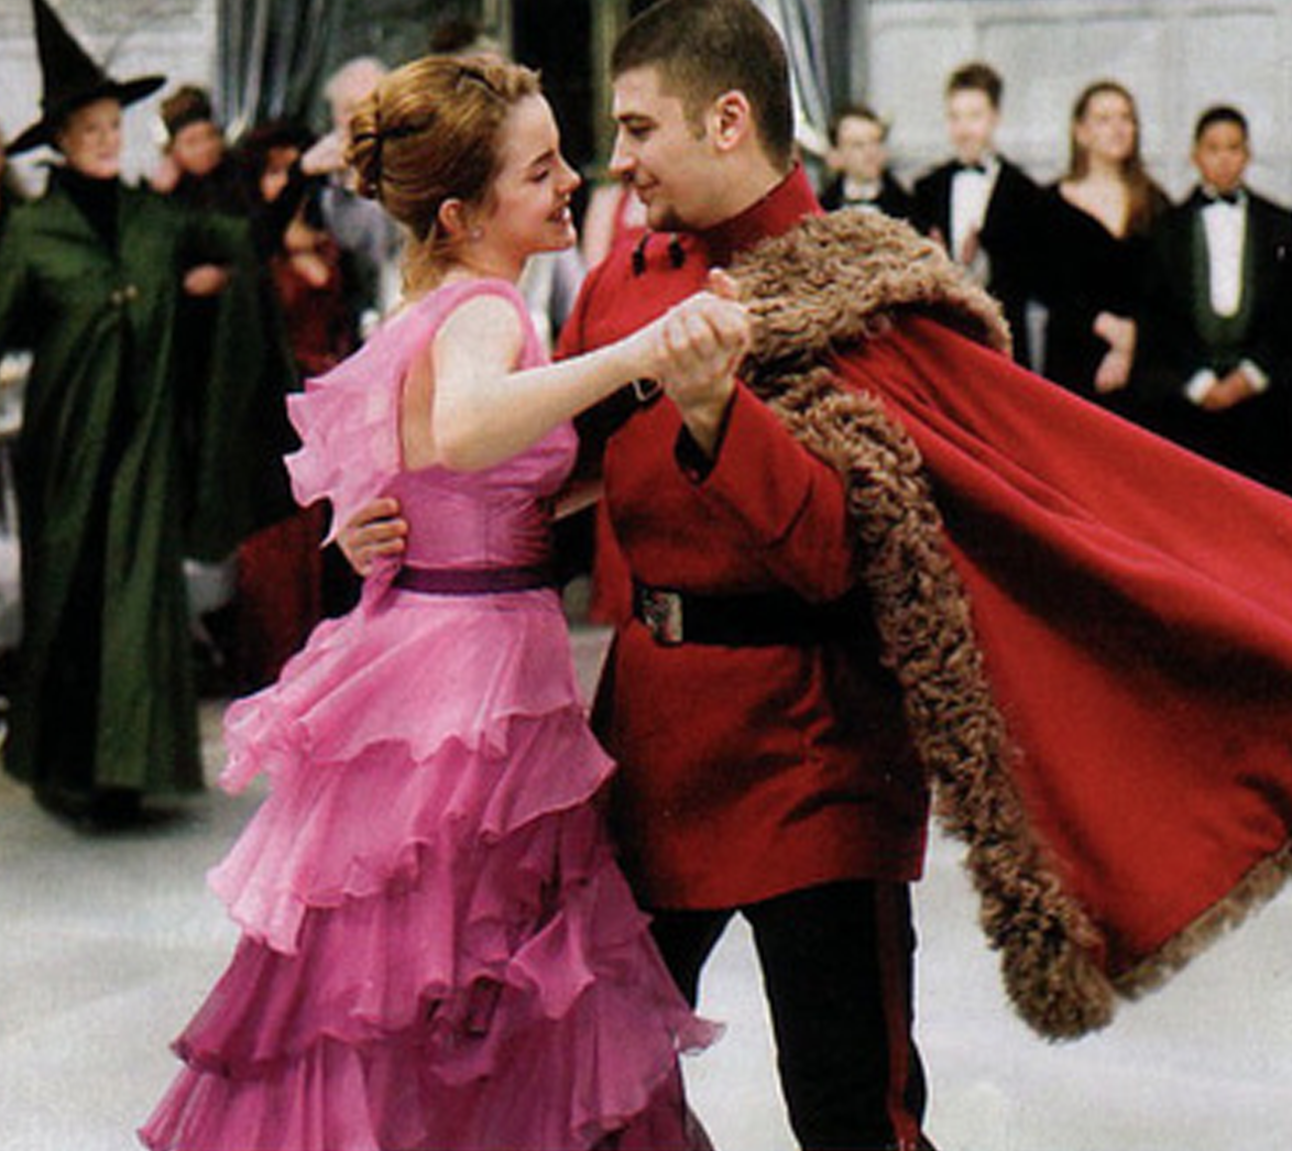 Hermione at the Yule Ball in Harry Potter